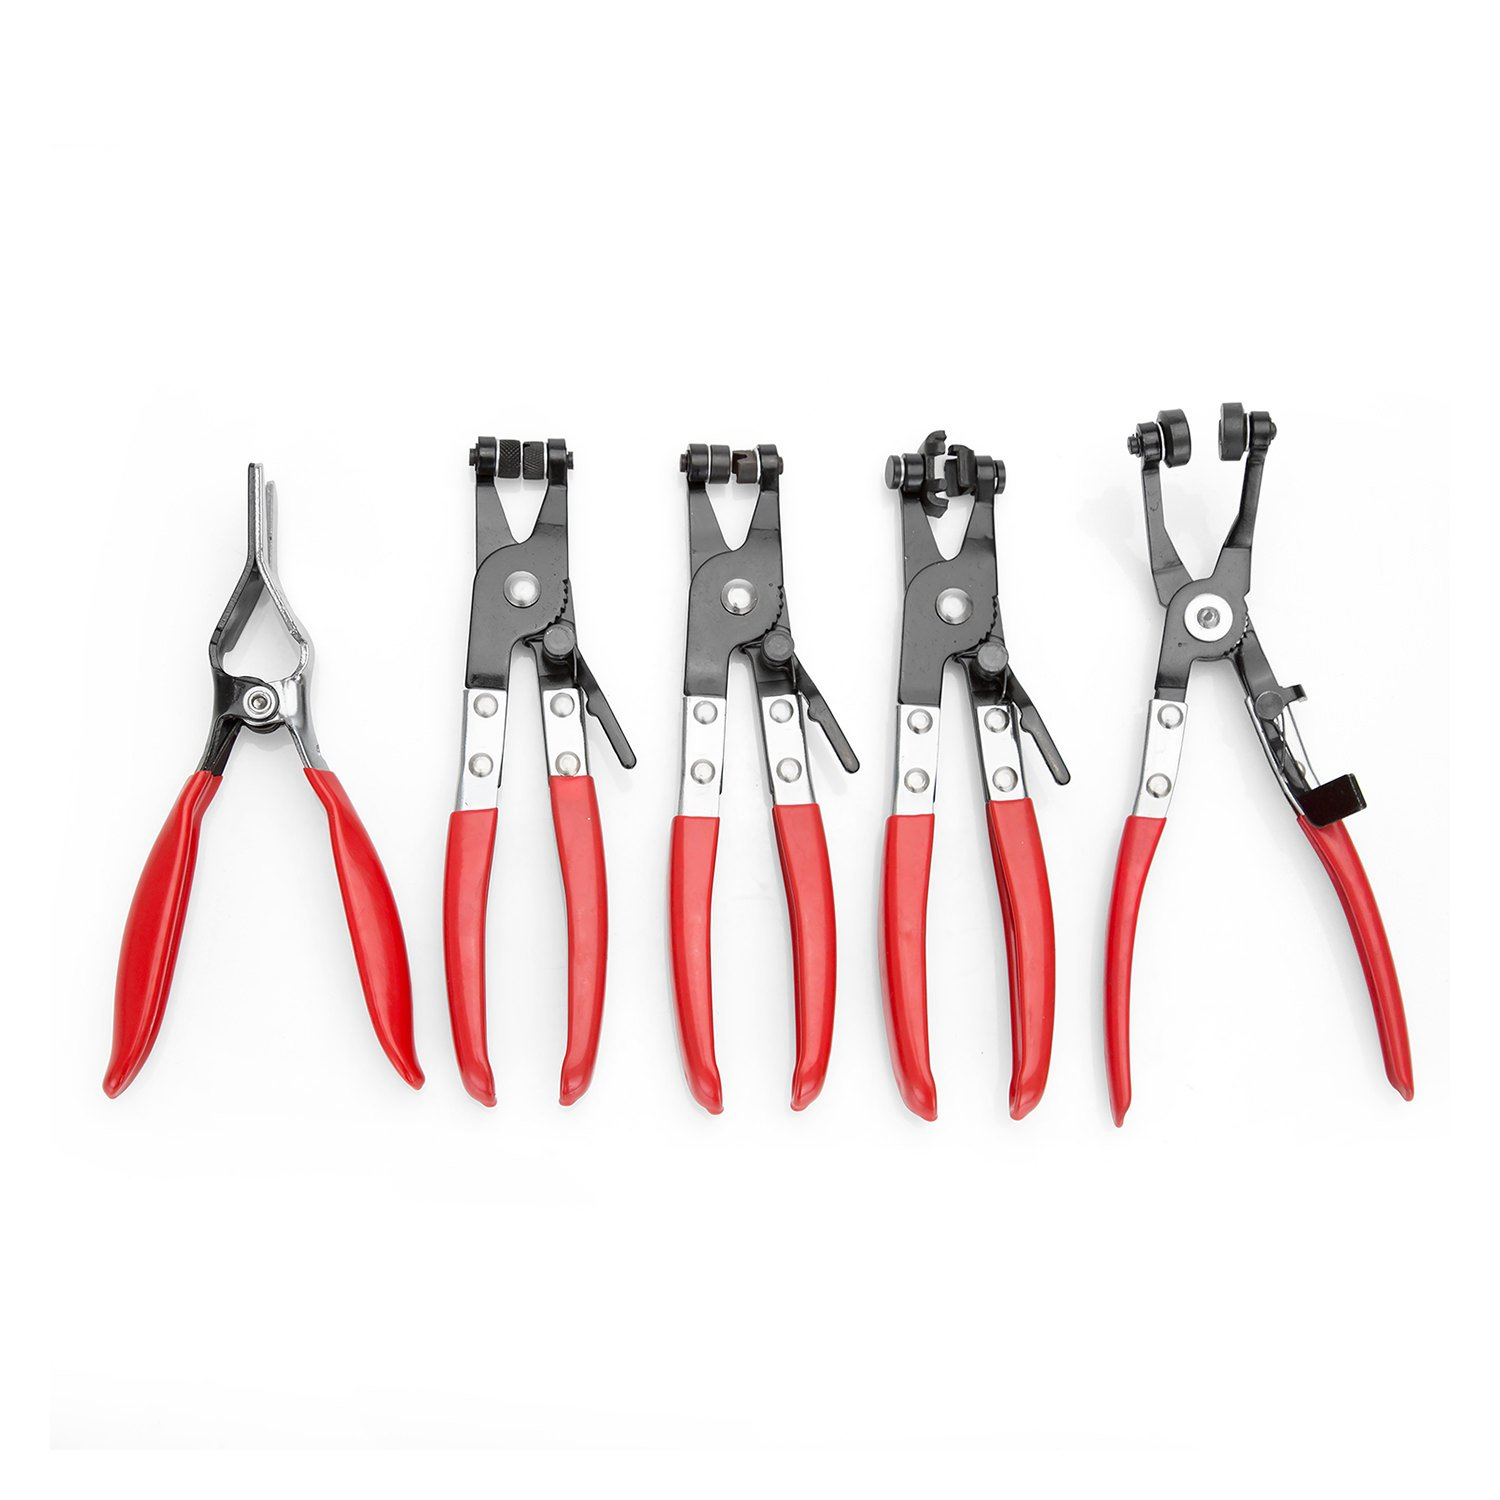 OEMTOOLS 27159 Hose Clamp Pliers Set, 5-Piece by OEMTOOLS